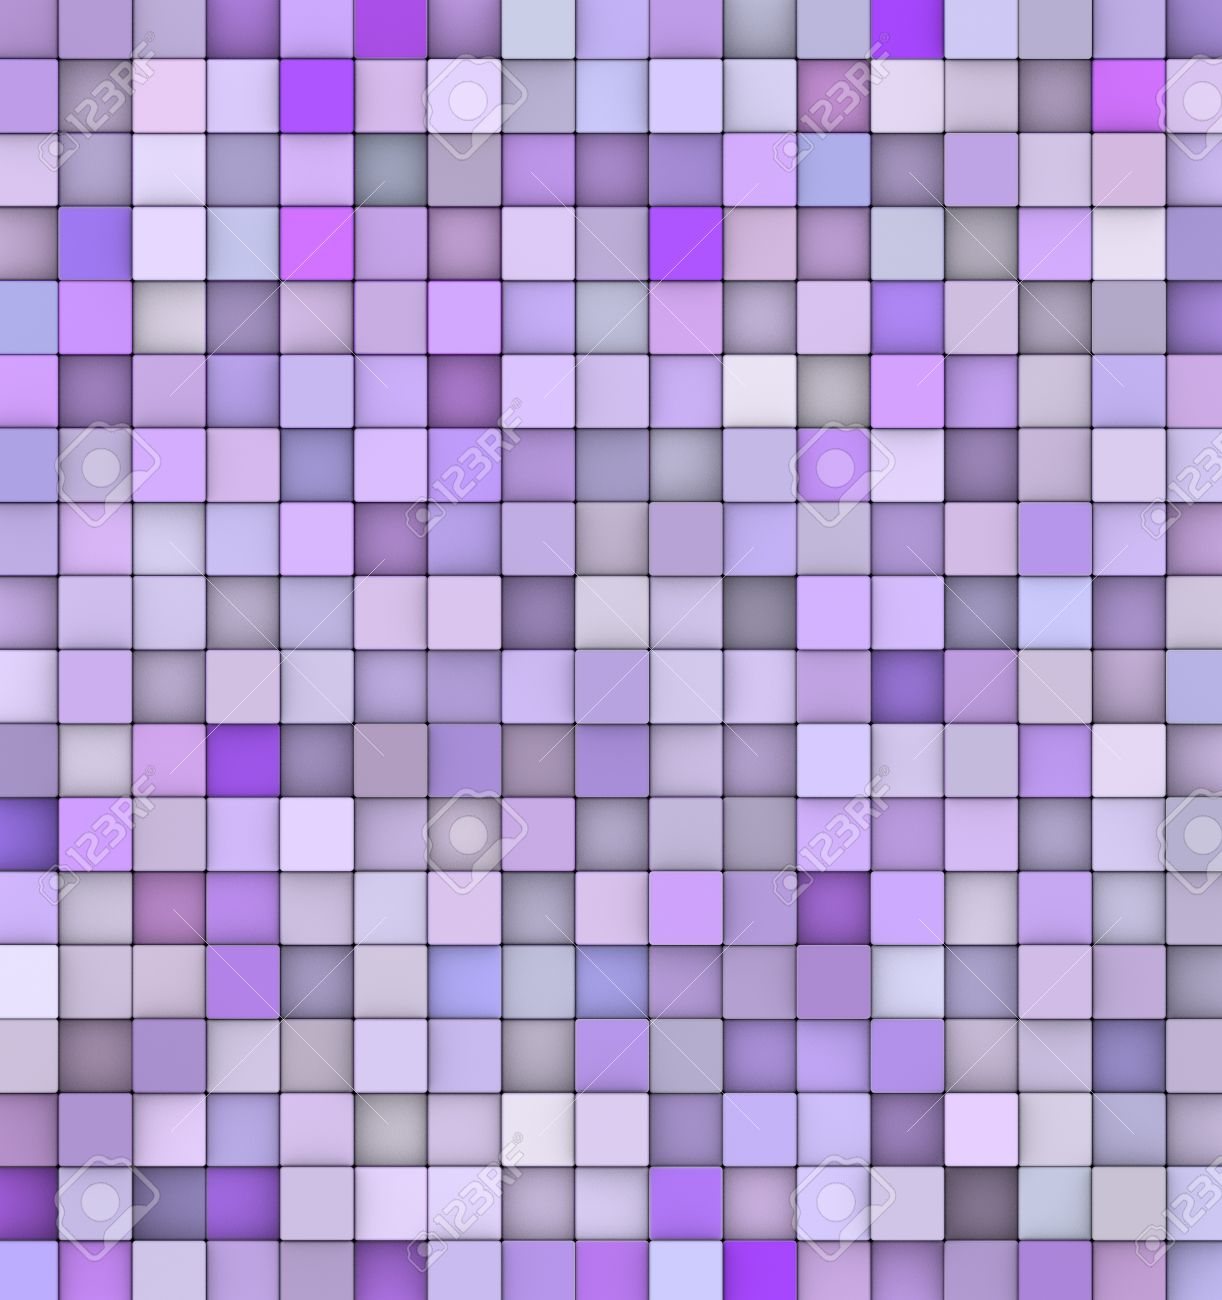 Abstract Backdrop 3d Render Cubes In Different Shades Of Purple ...